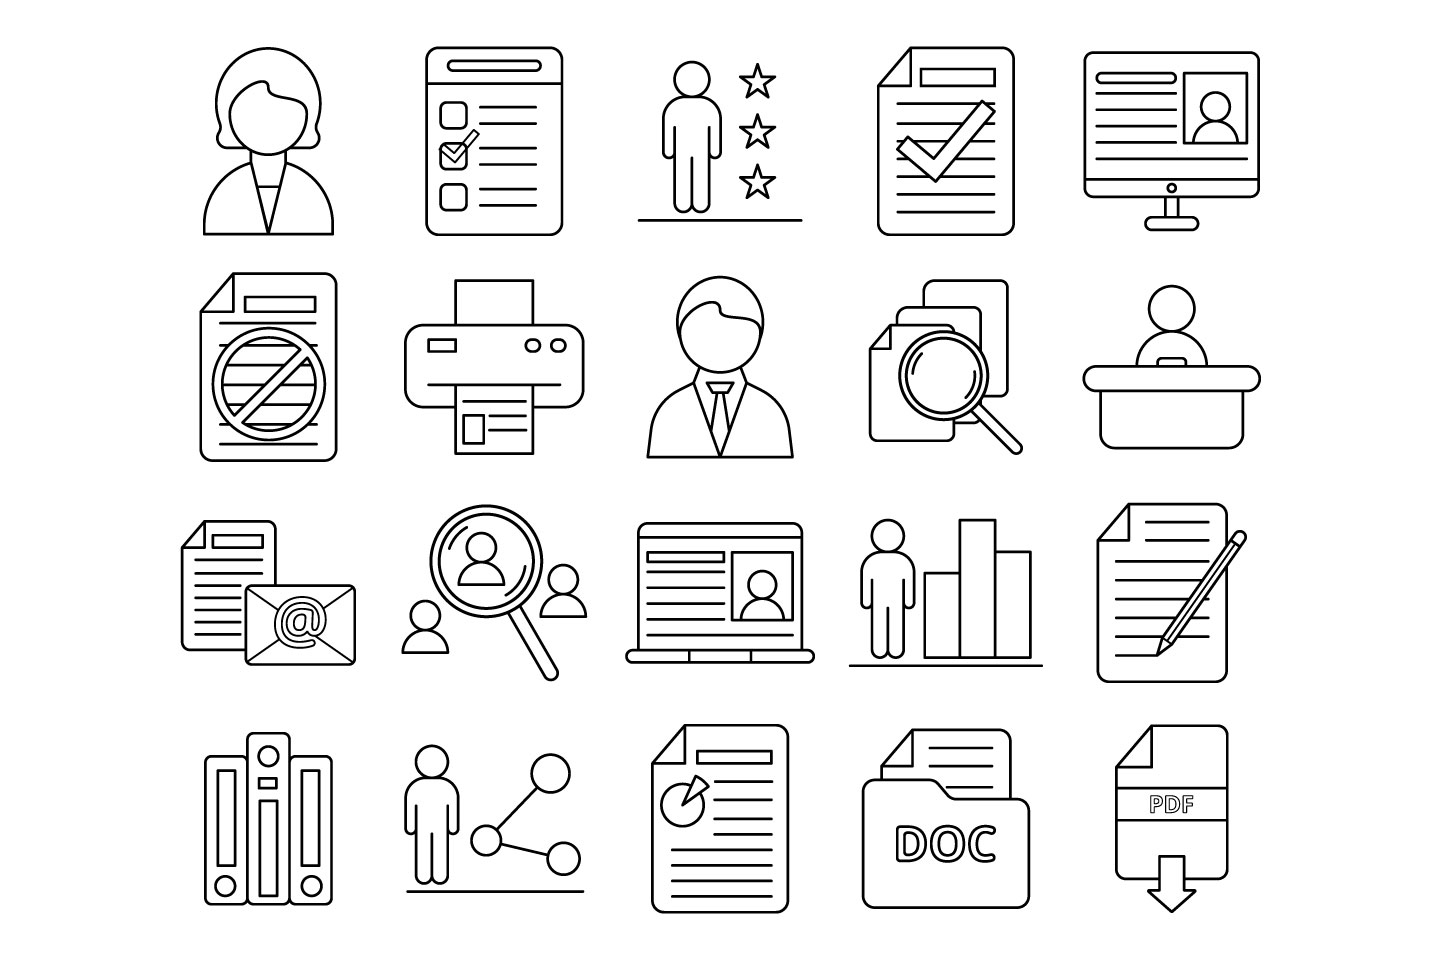 resume icons vector at getdrawings